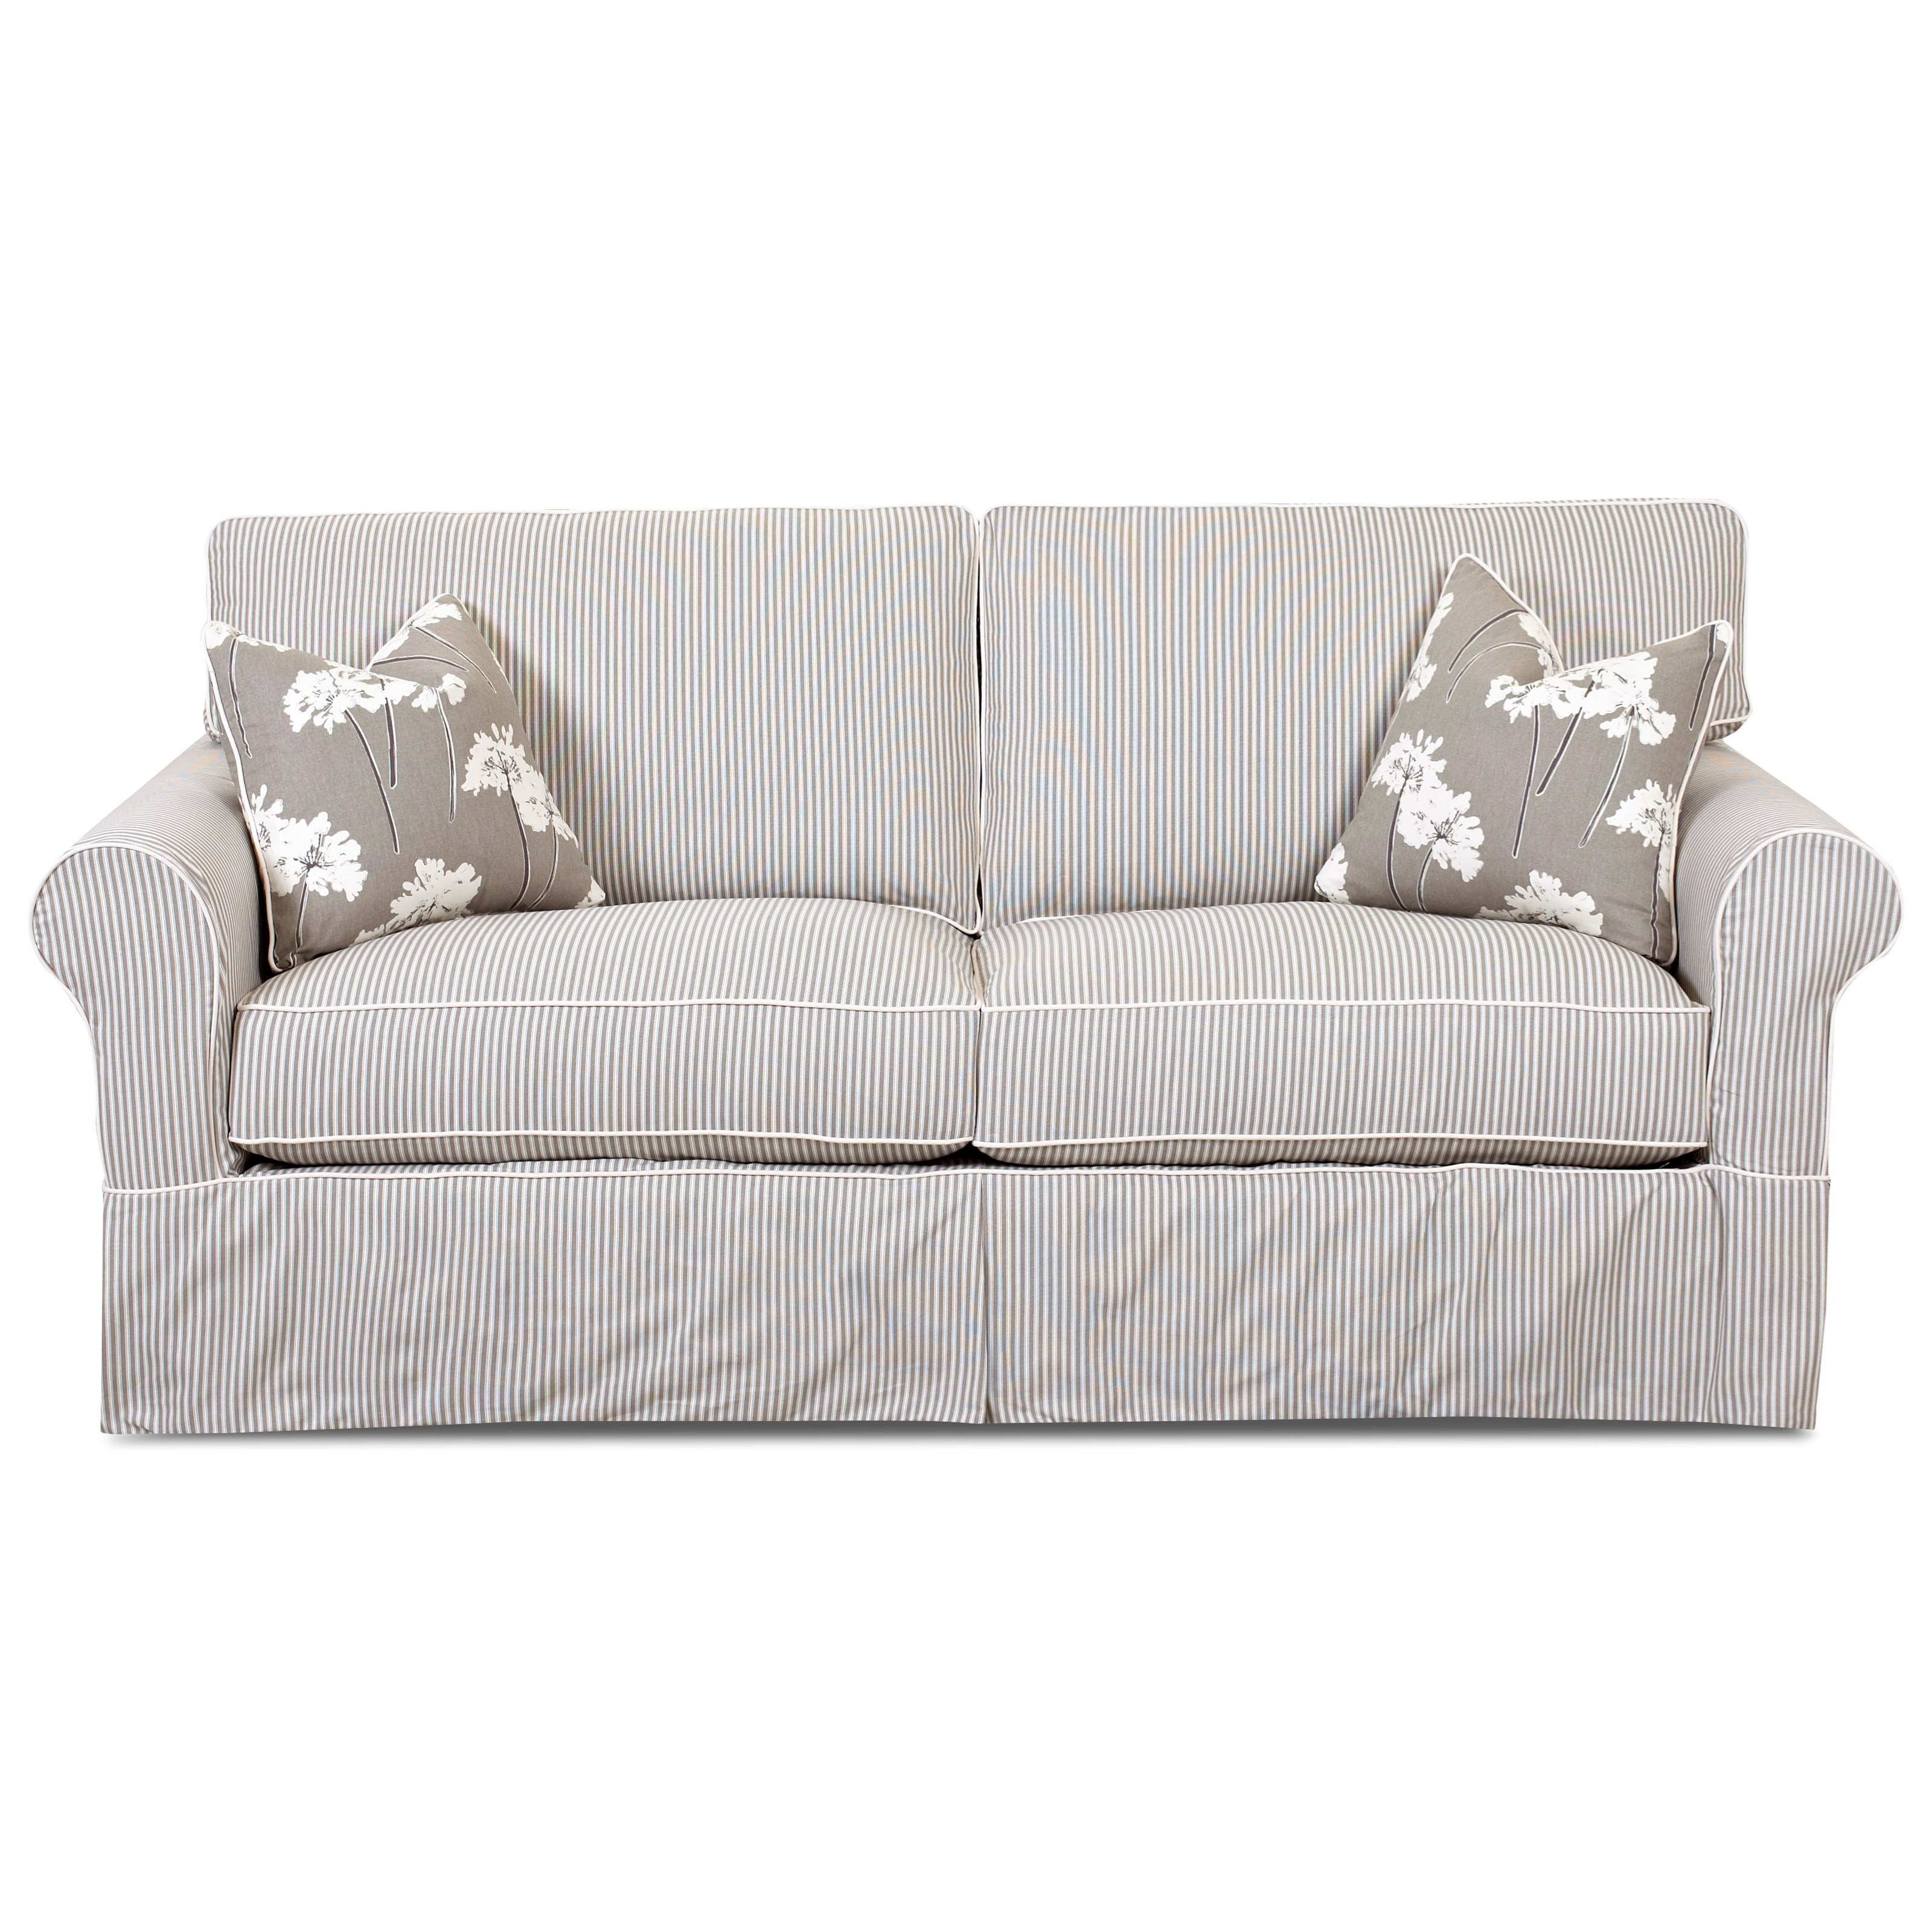 Traditional Regular Dreamquest Sleeper Sofa with Rolled Arms and Skirted Base